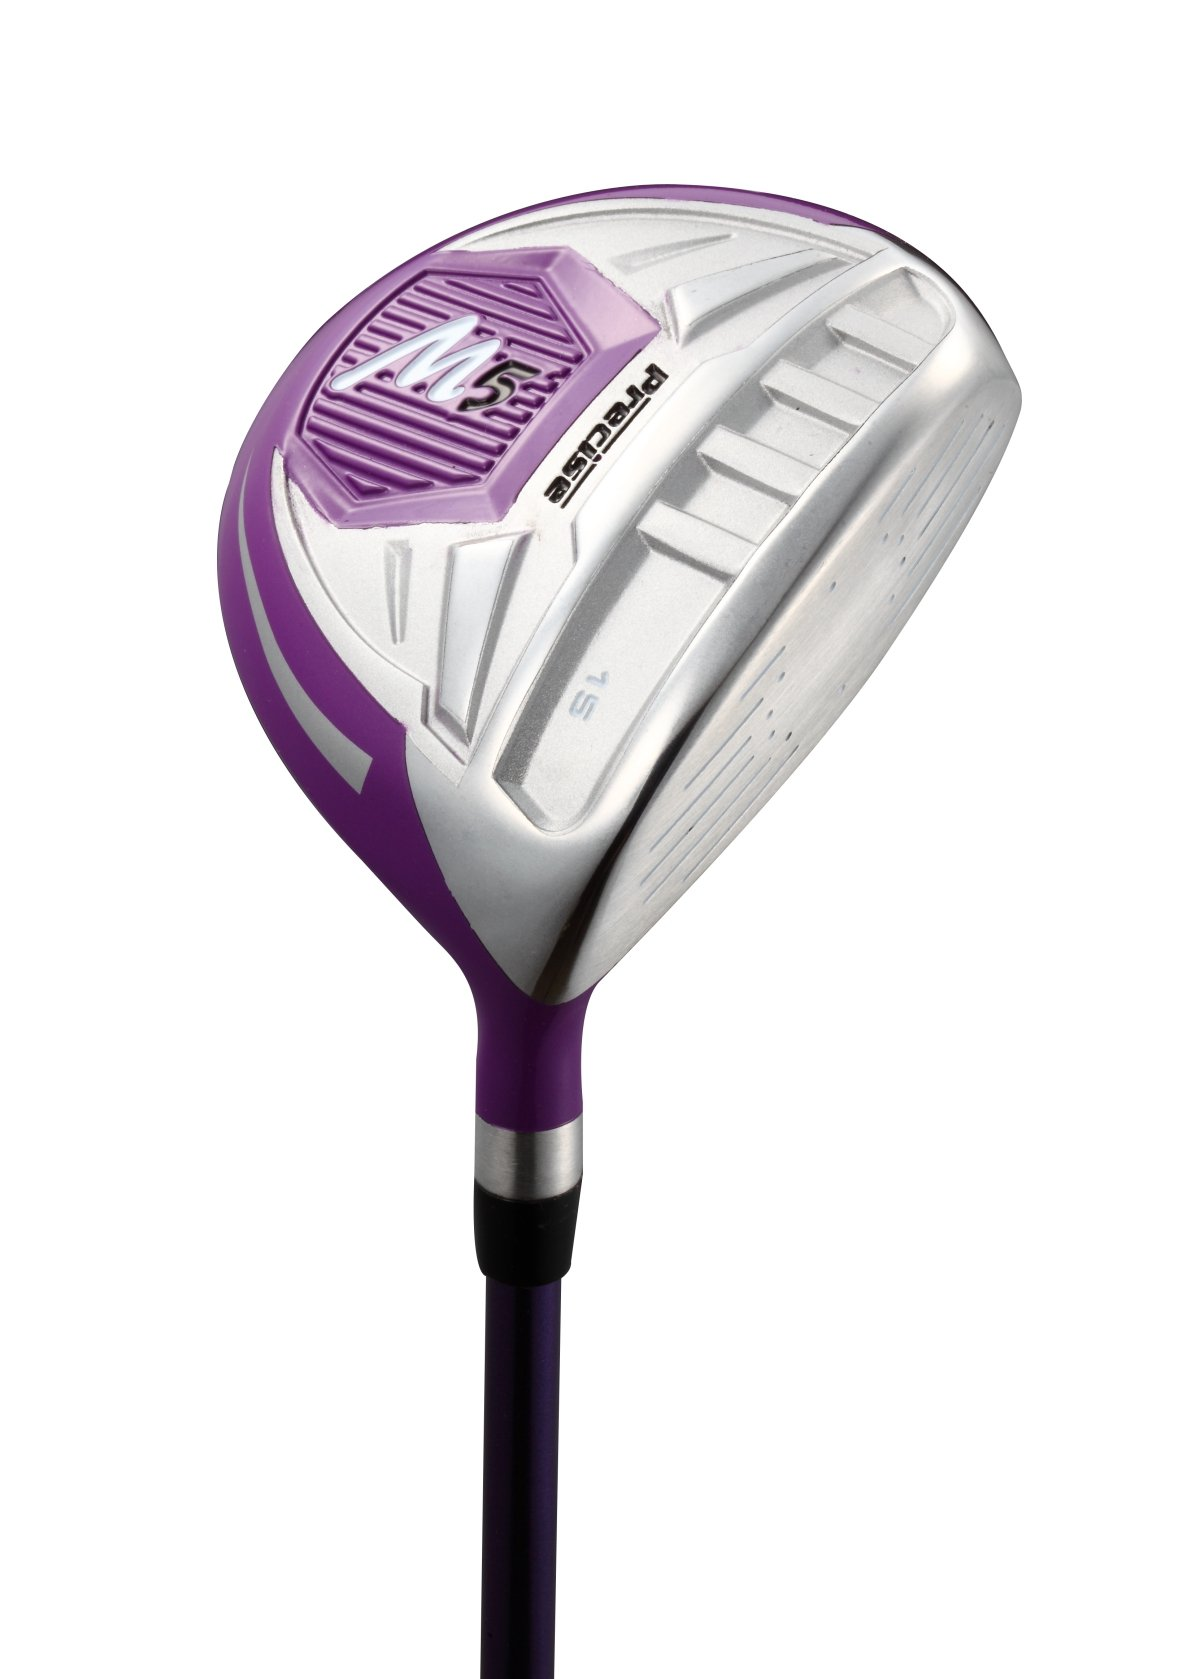 Precise M5 Ladies Womens Complete Right Handed Golf Clubs Set Includes Titanium Driver, S.S. Fairway, S.S. Hybrid, S.S. 5-PW Irons, Putter, Stand Bag, 3 H/C's Purple (Right Hand) by PreciseGolf Co. (Image #3)